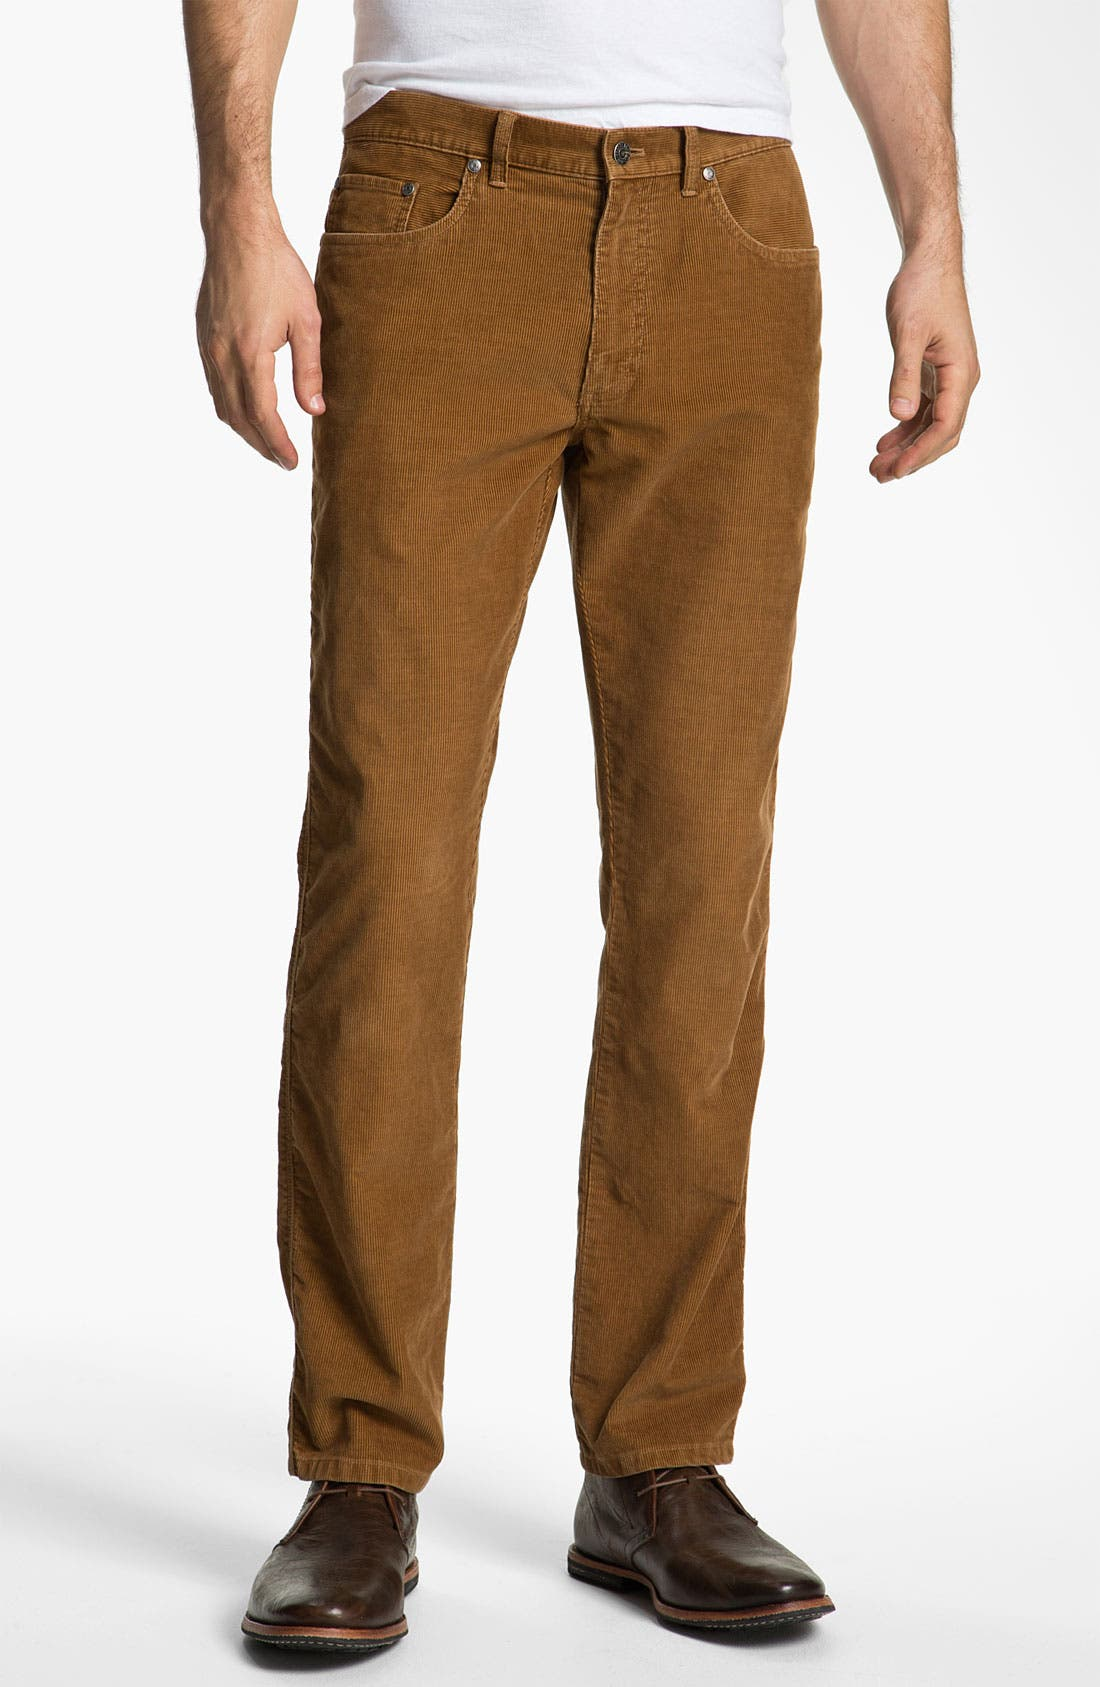 Alternate Image 1 Selected - Brooks Brothers Slim Fit Corduroy Pants